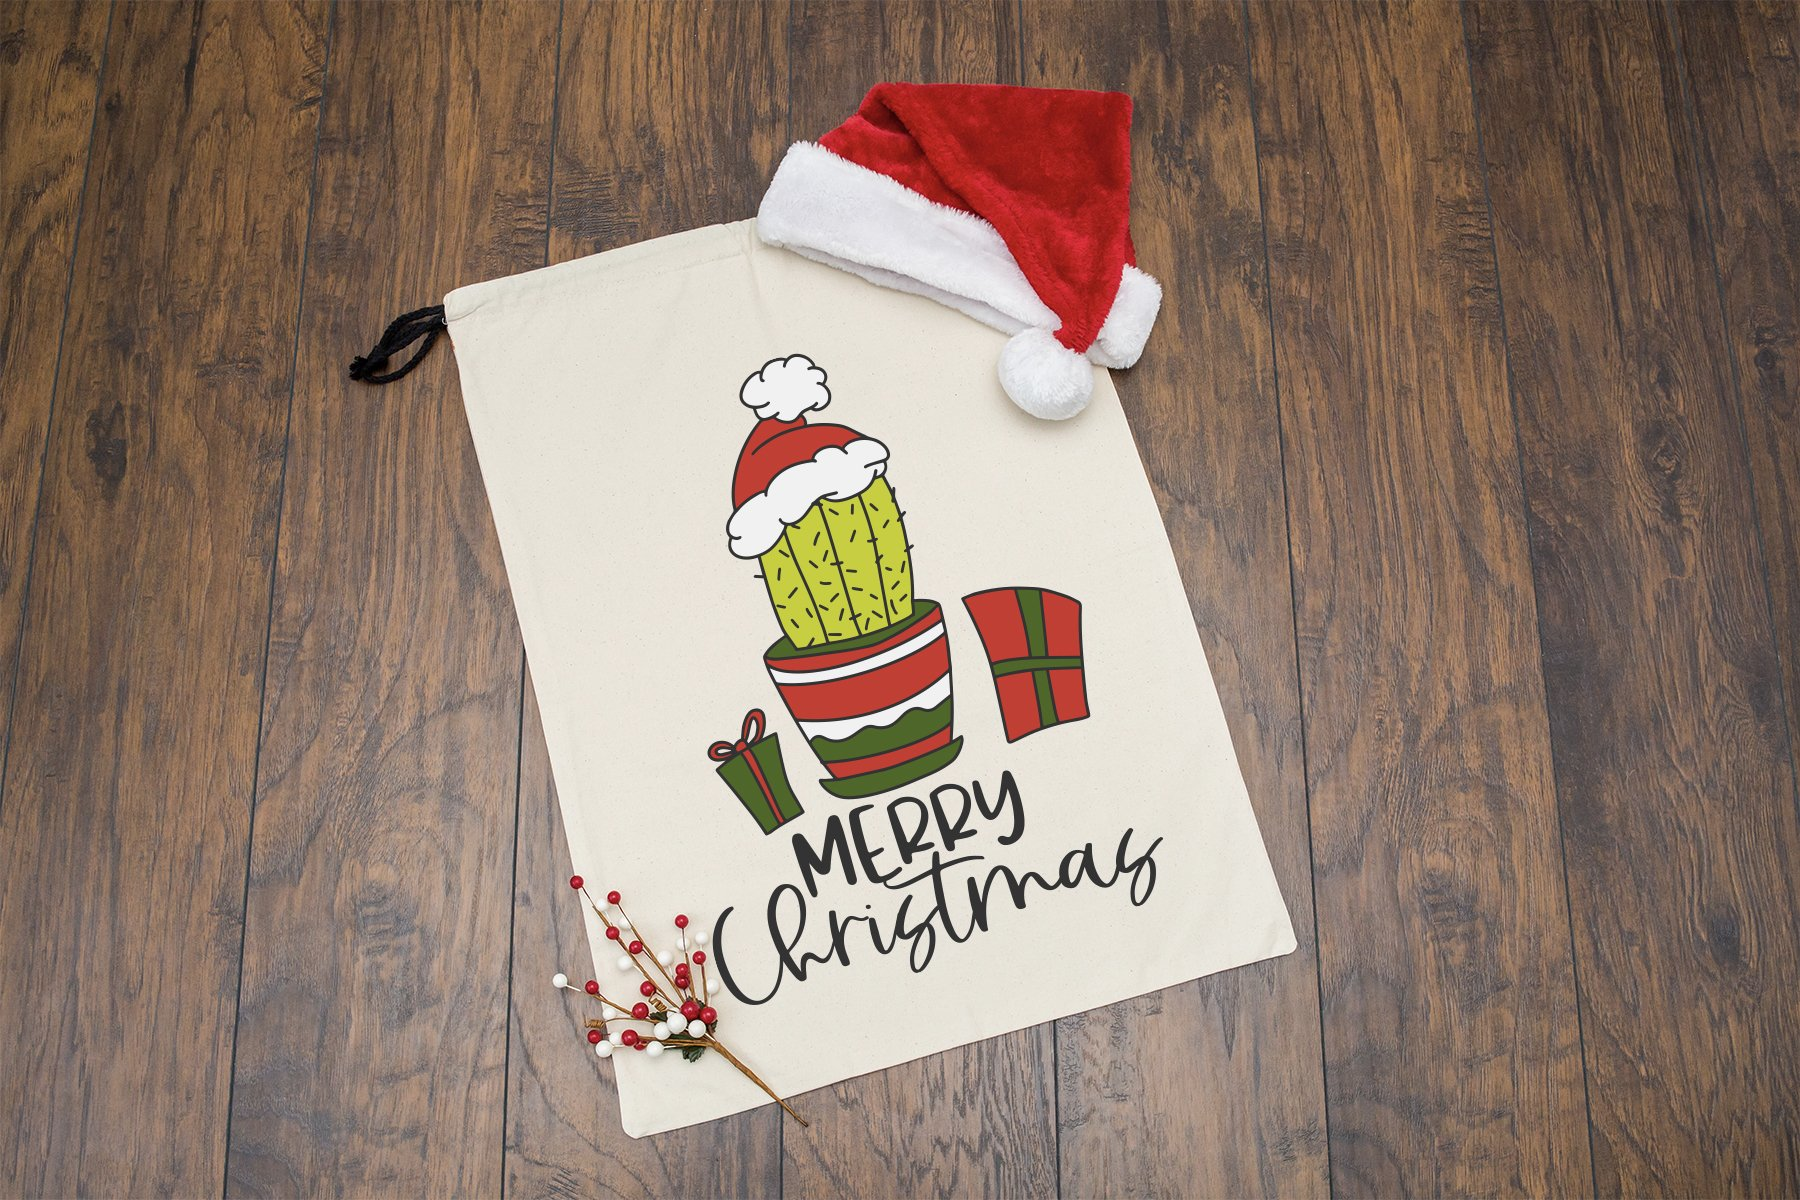 Merry Christmas SVG | Cactus SVG example image 2